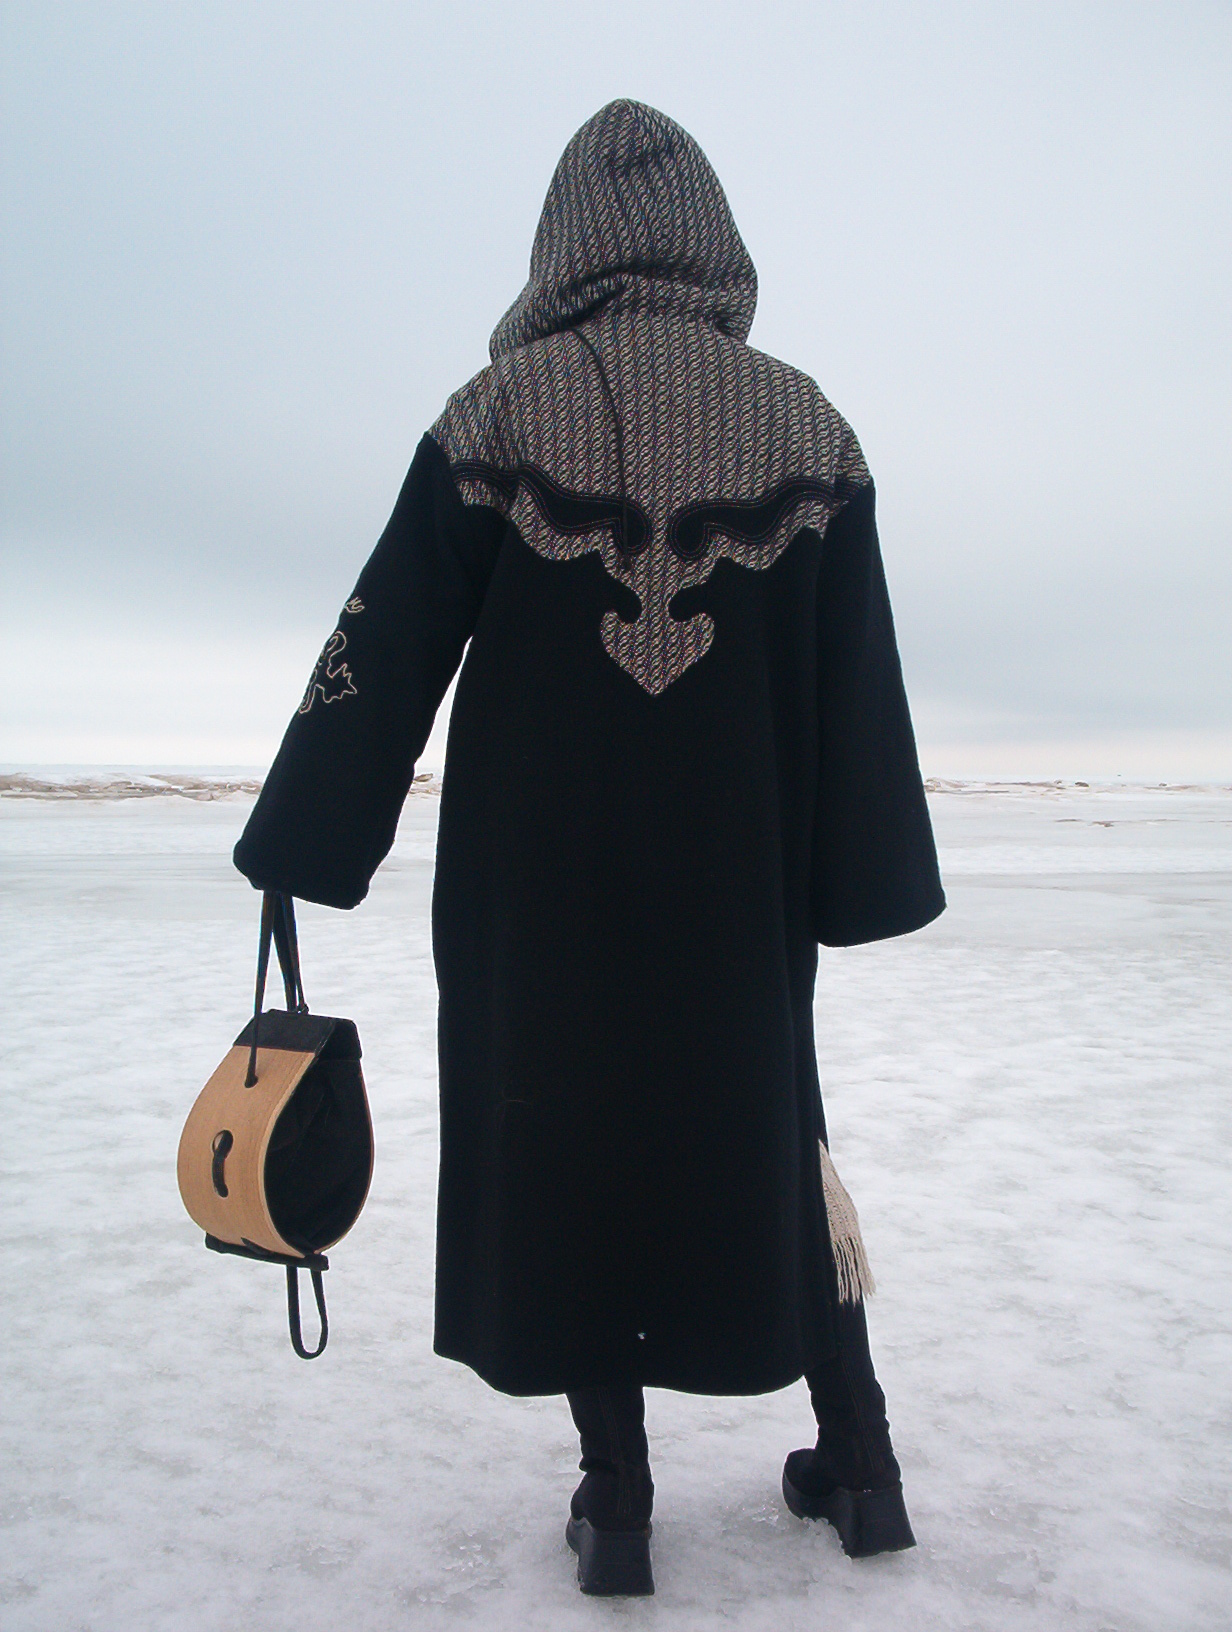 woman wearing a black-grey coat with a large wooden bag in hand